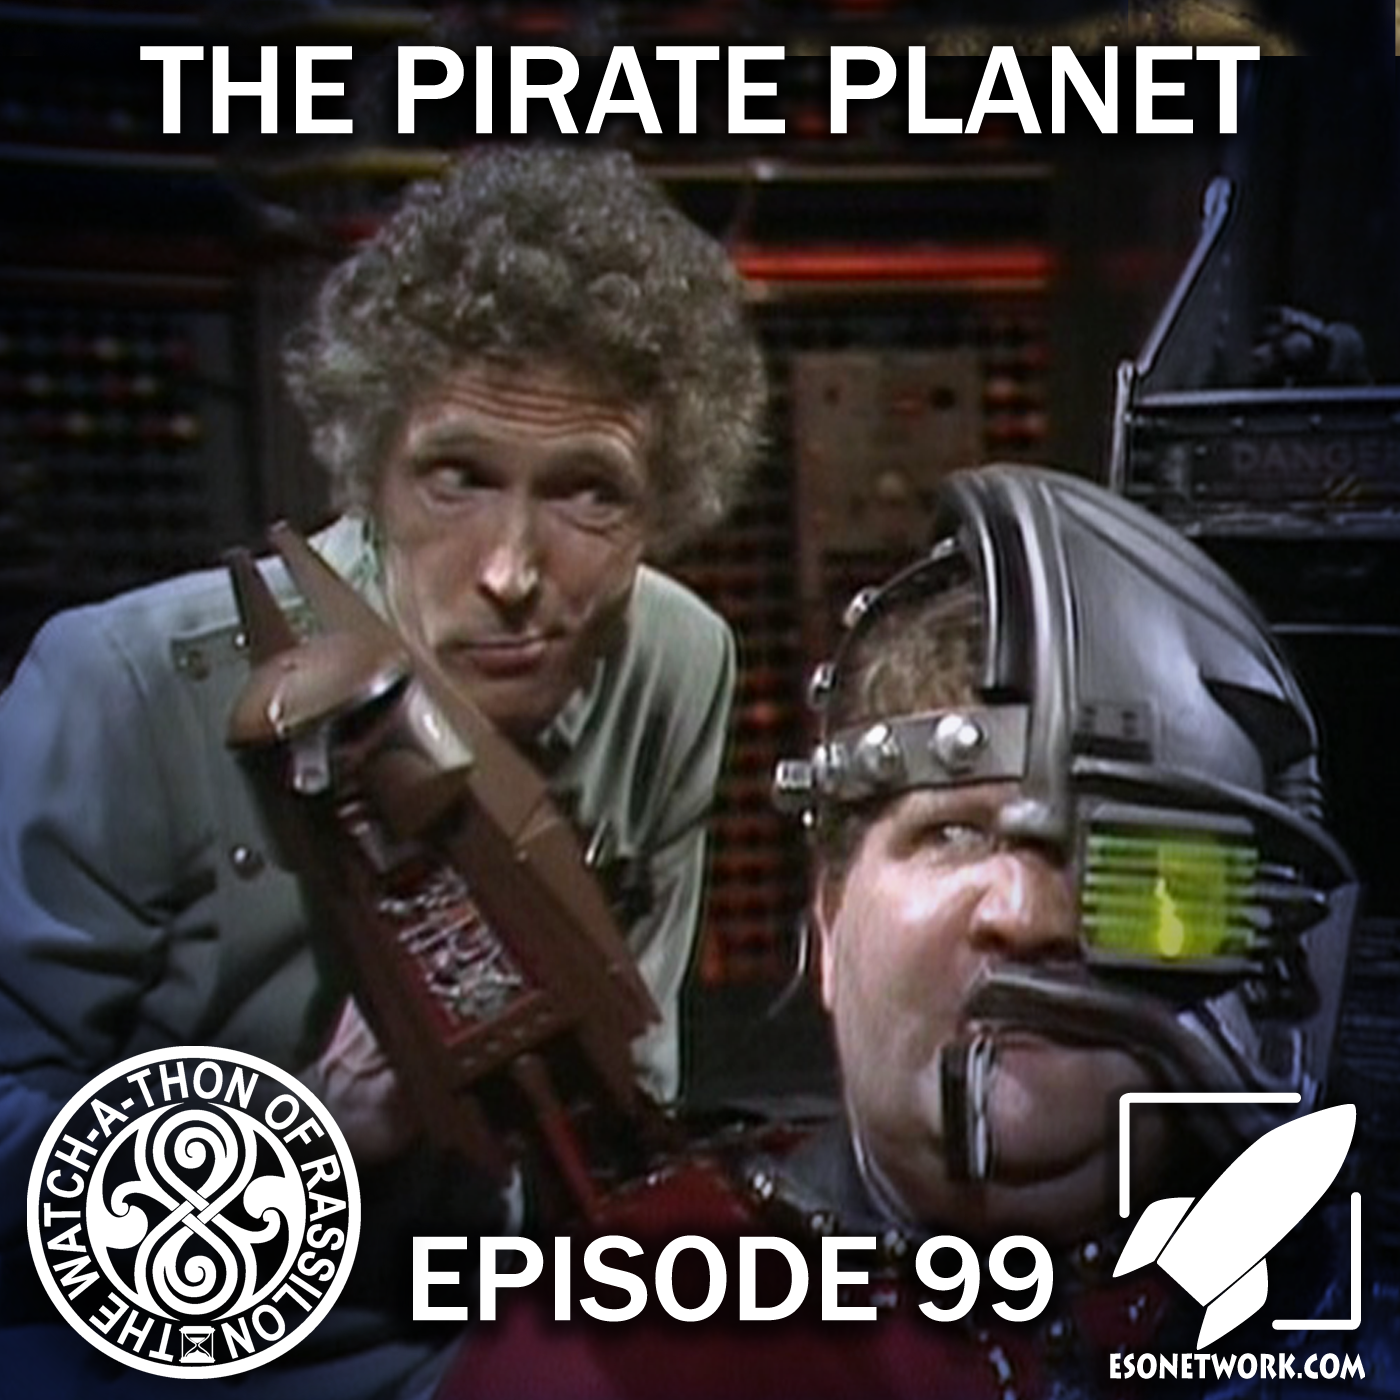 The Watch-A-Thon of Rassilon: Episode 99: The Pirate Planet